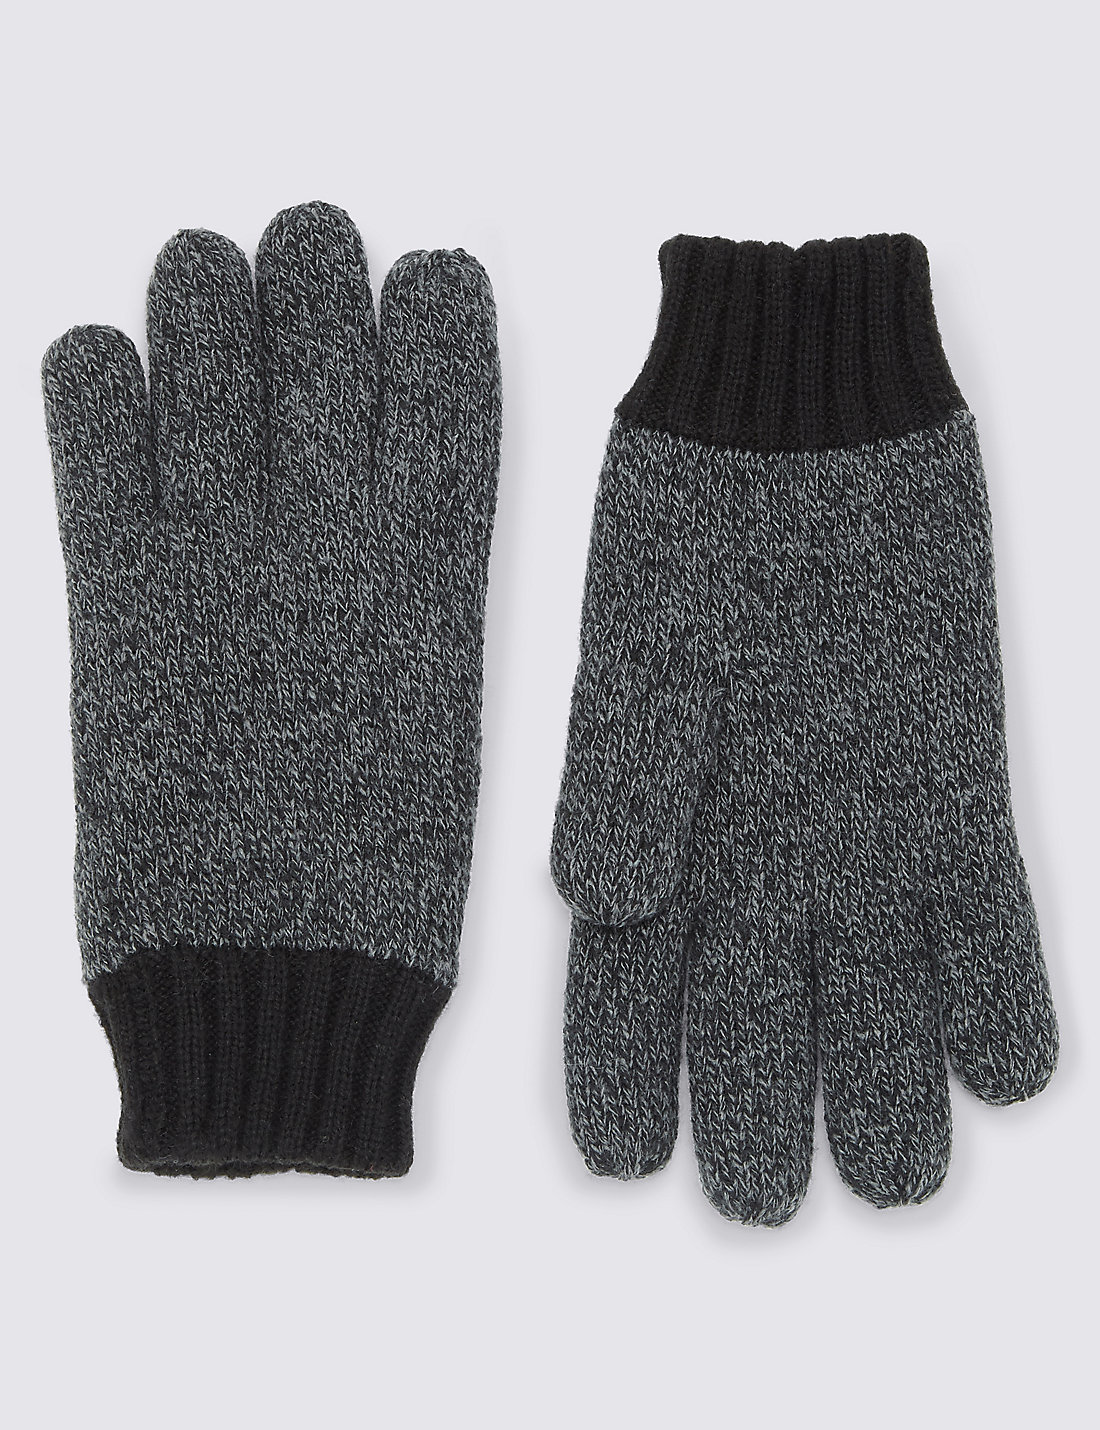 Mens leather driving gloves ireland - Thinsulate Trade Knitted Gloves